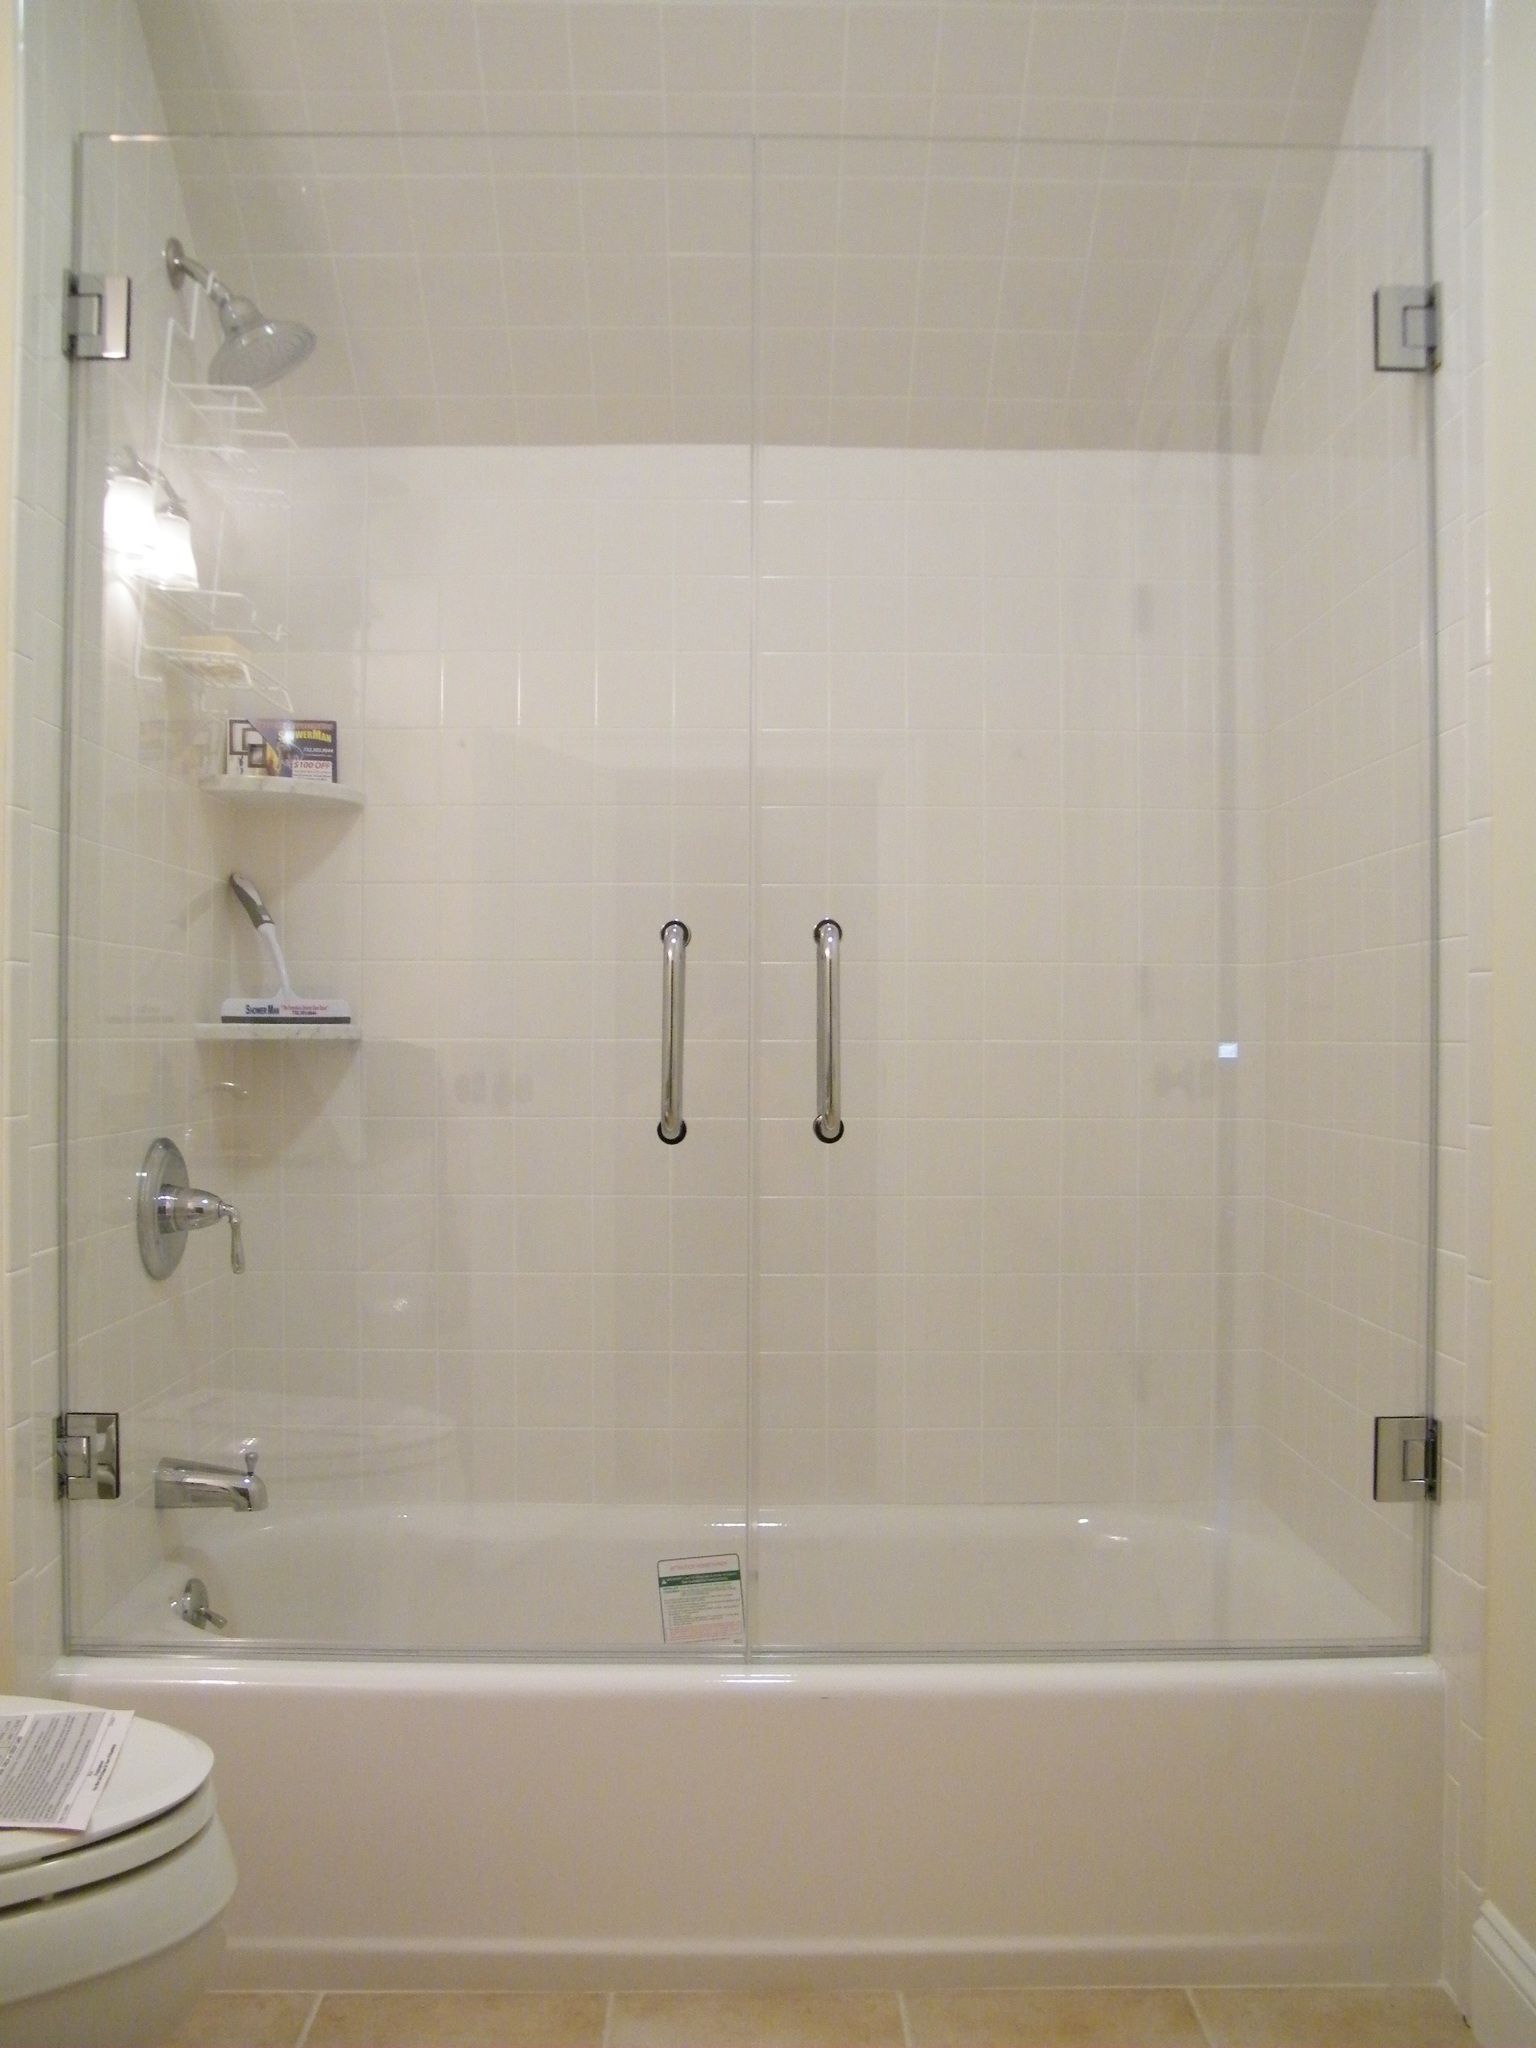 Frameless Glass Tub Enclosure Framless Glass Doors On Your Bath Tub intended for size 1536 X 2048